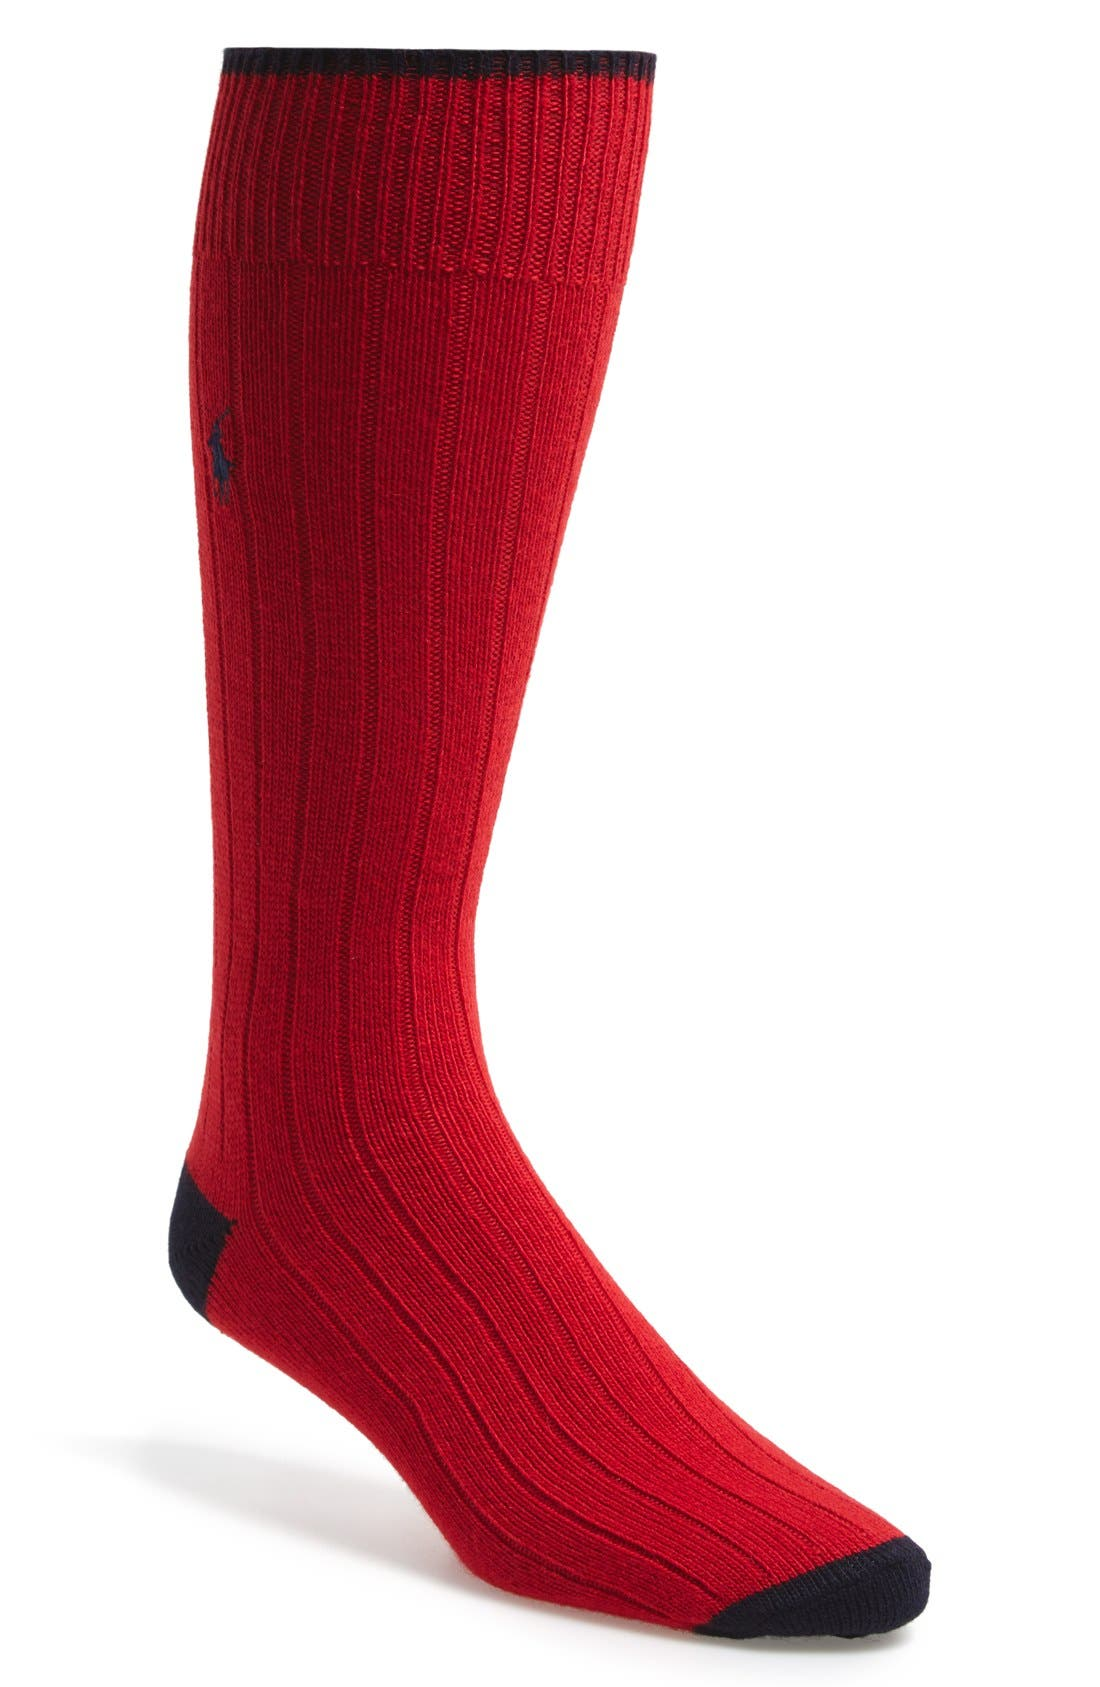 Alternate Image 1 Selected - Polo Ralph Lauren Cashmere Blend Socks